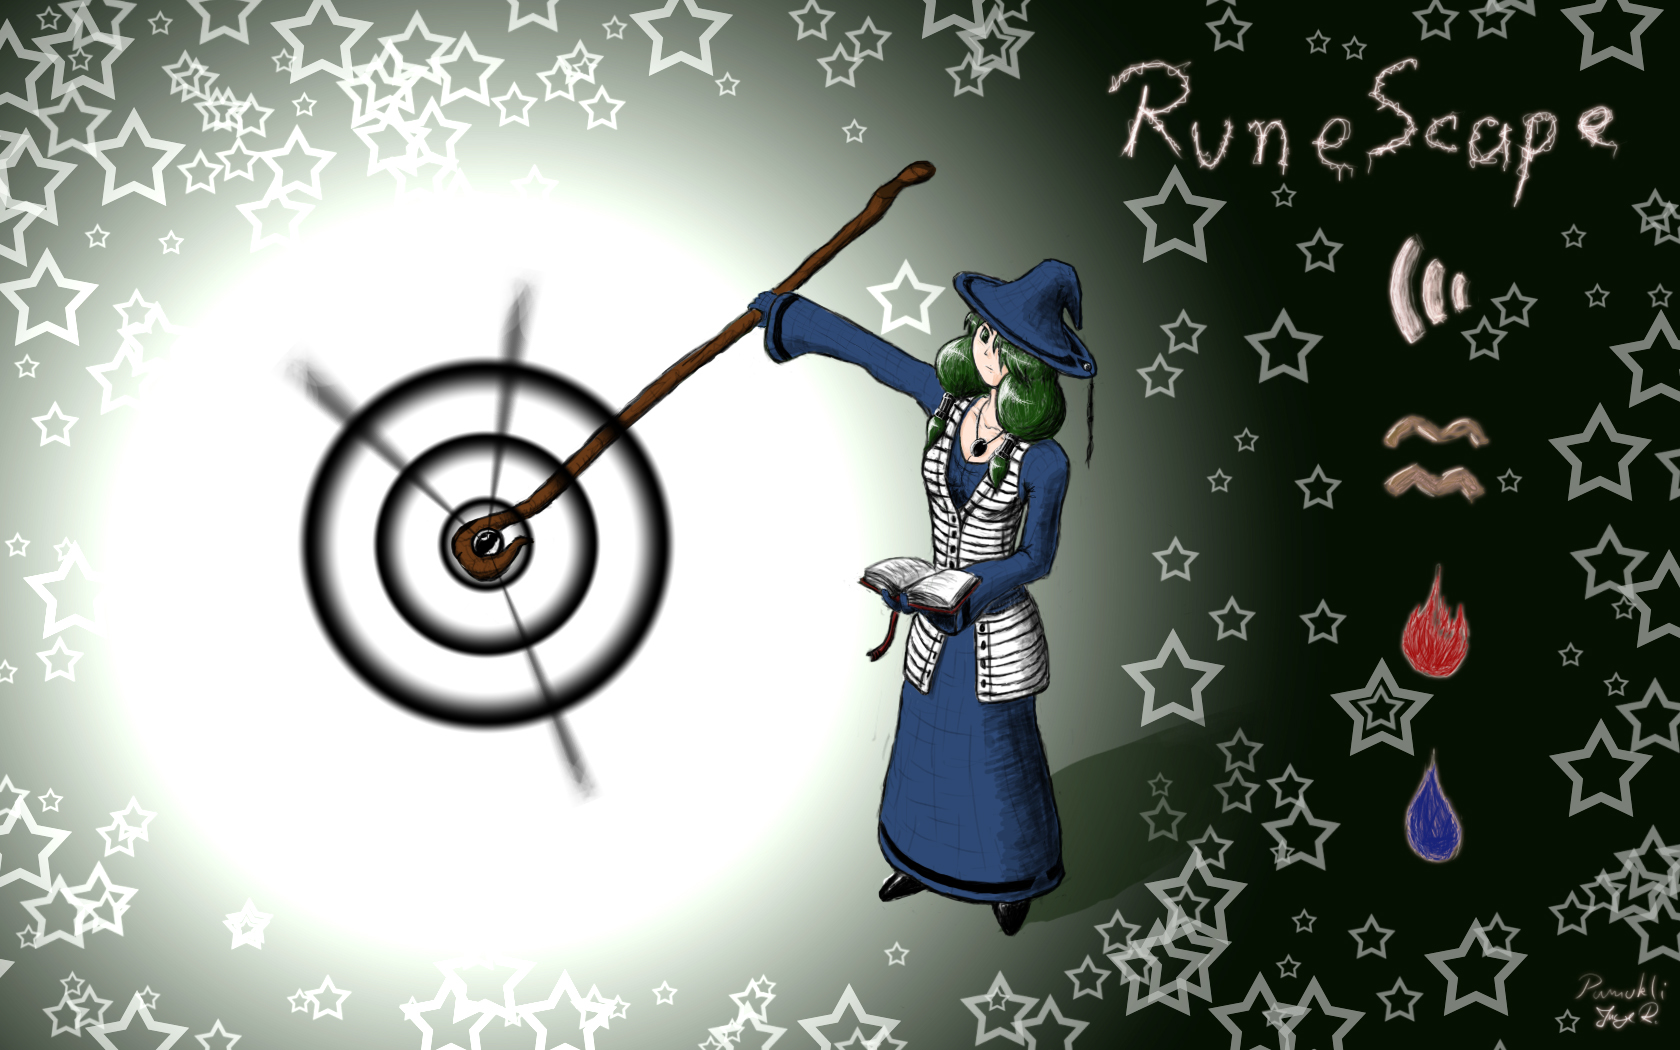 <b>Runescape</b> Bots, Hacks, Dupes and other Cheats